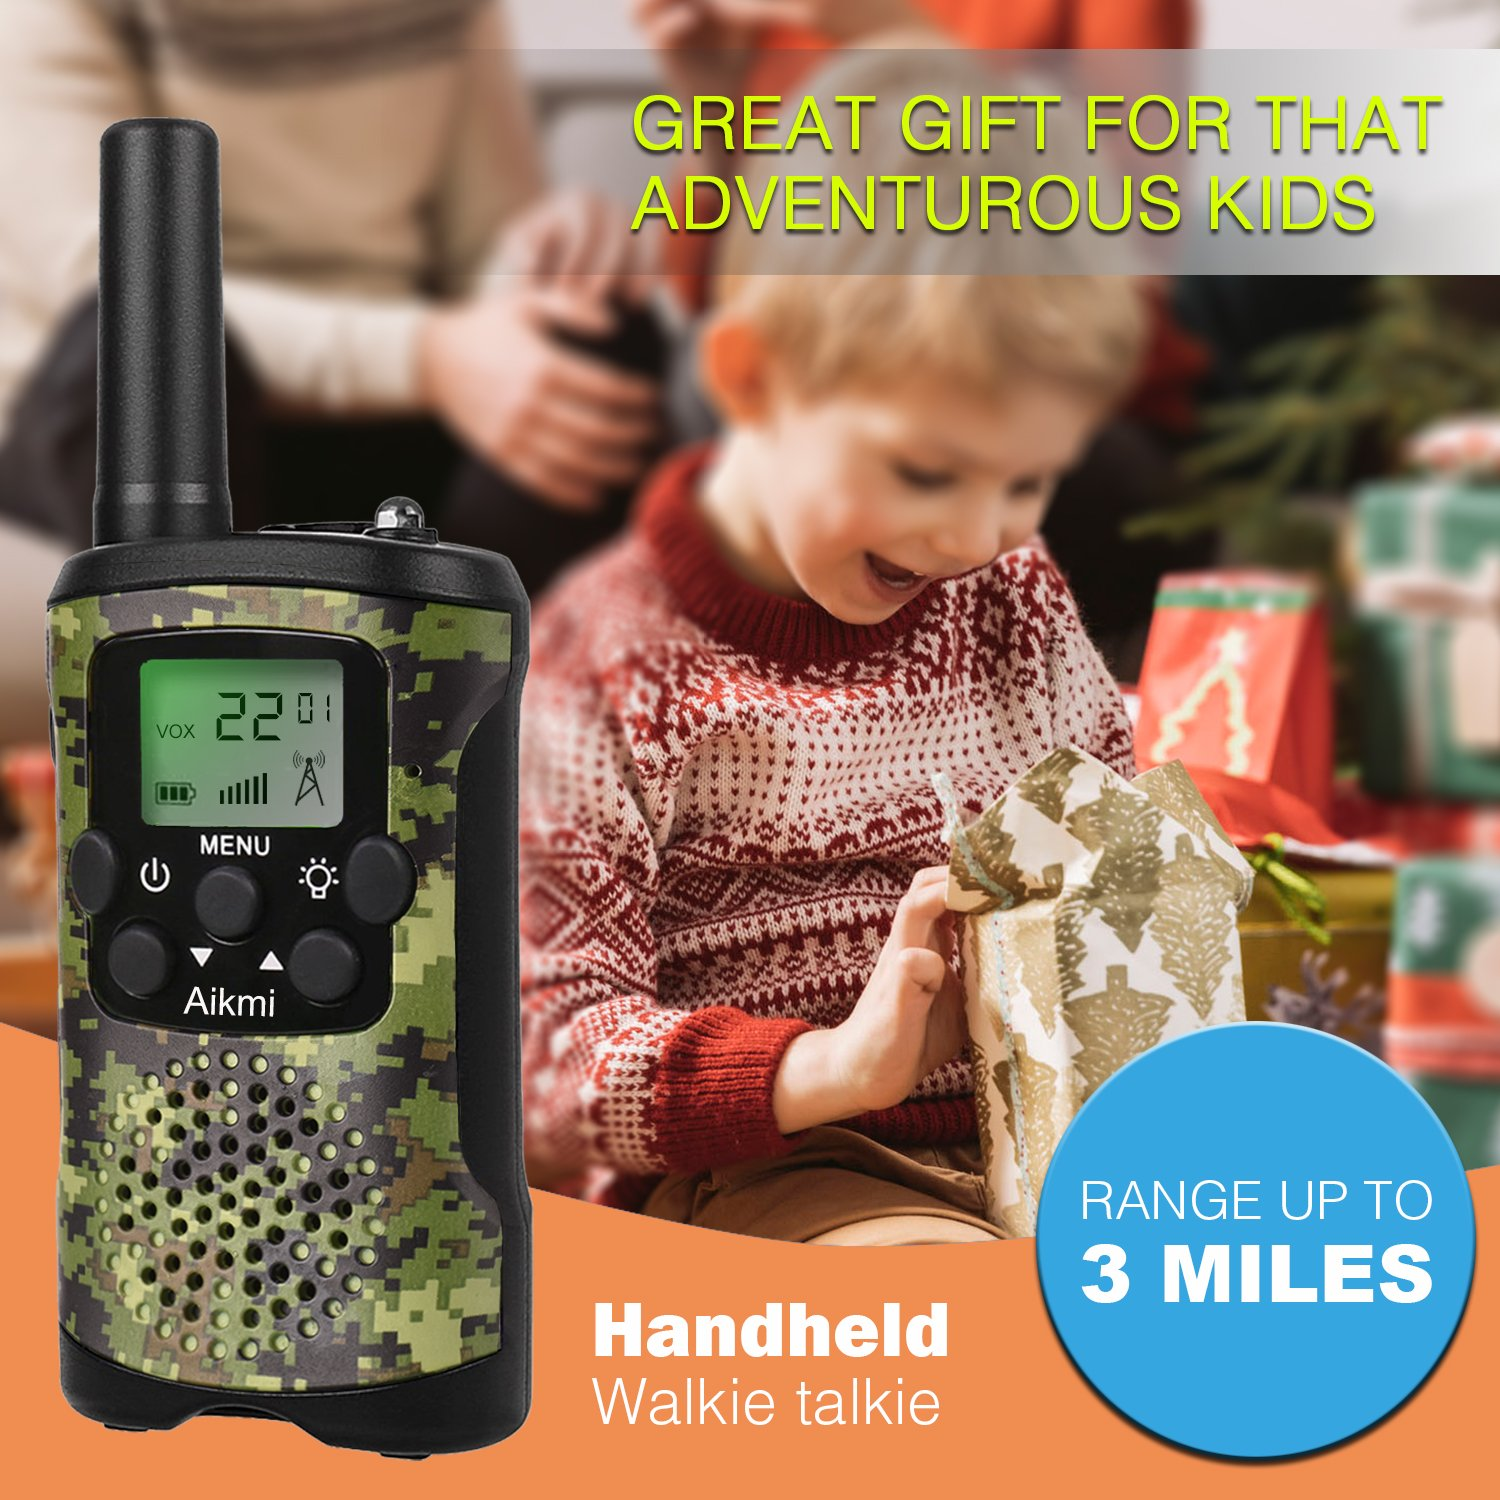 Walkie Talkies for Kids 22 Channel 2 Way Radio 3 Miles Long Range Handheld Walkie Talkies Durable Toy Best Birthday Gifts for 6 year old Boys and Girls fit Outdoor Adventure Game Camping (Green Camo) by Aikmi (Image #2)